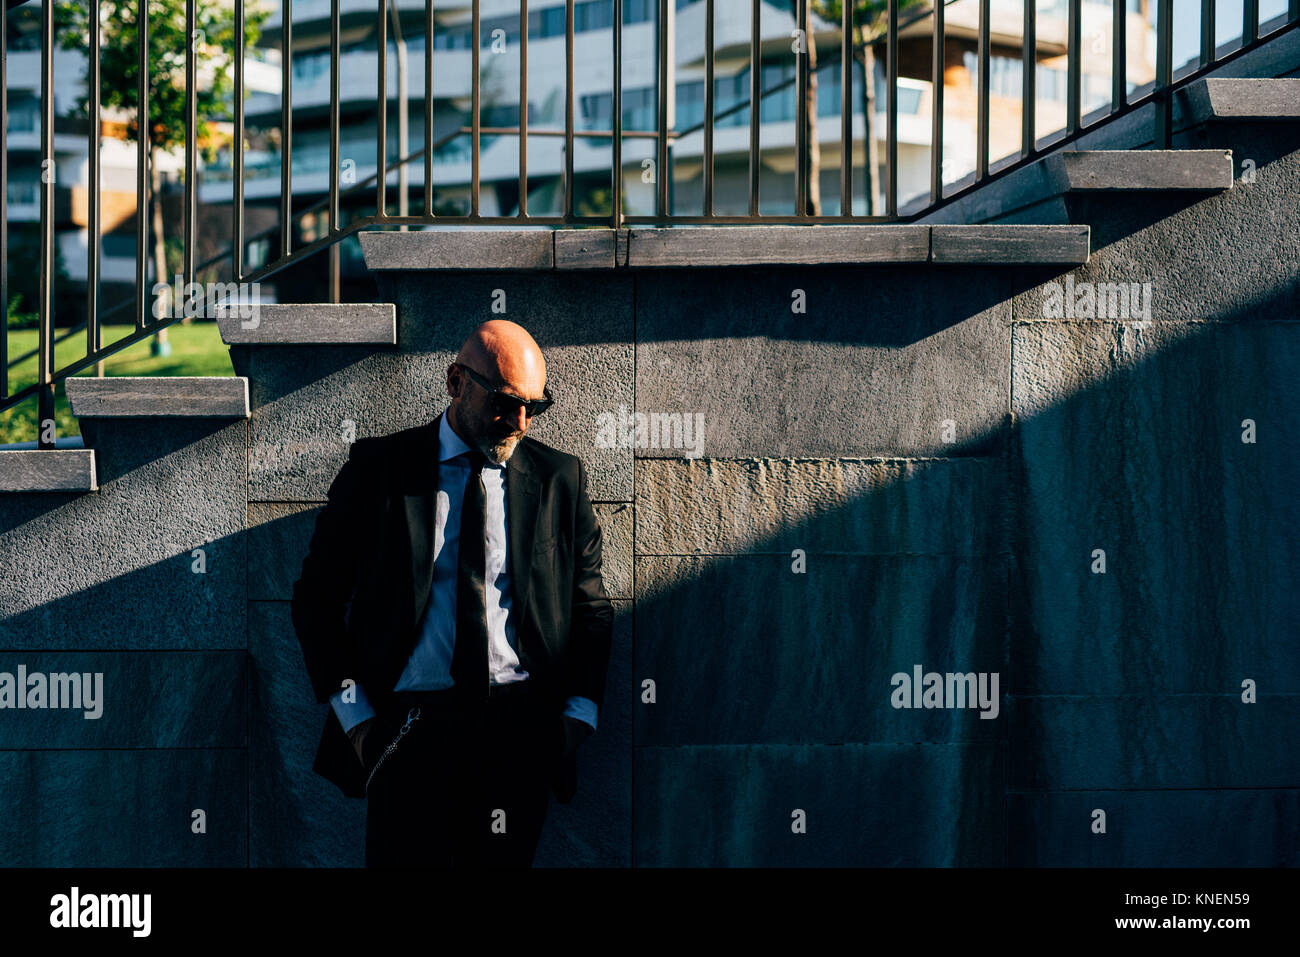 Portrait of mature businessman outdoors, standing beside steps, pensive expression Stock Photo